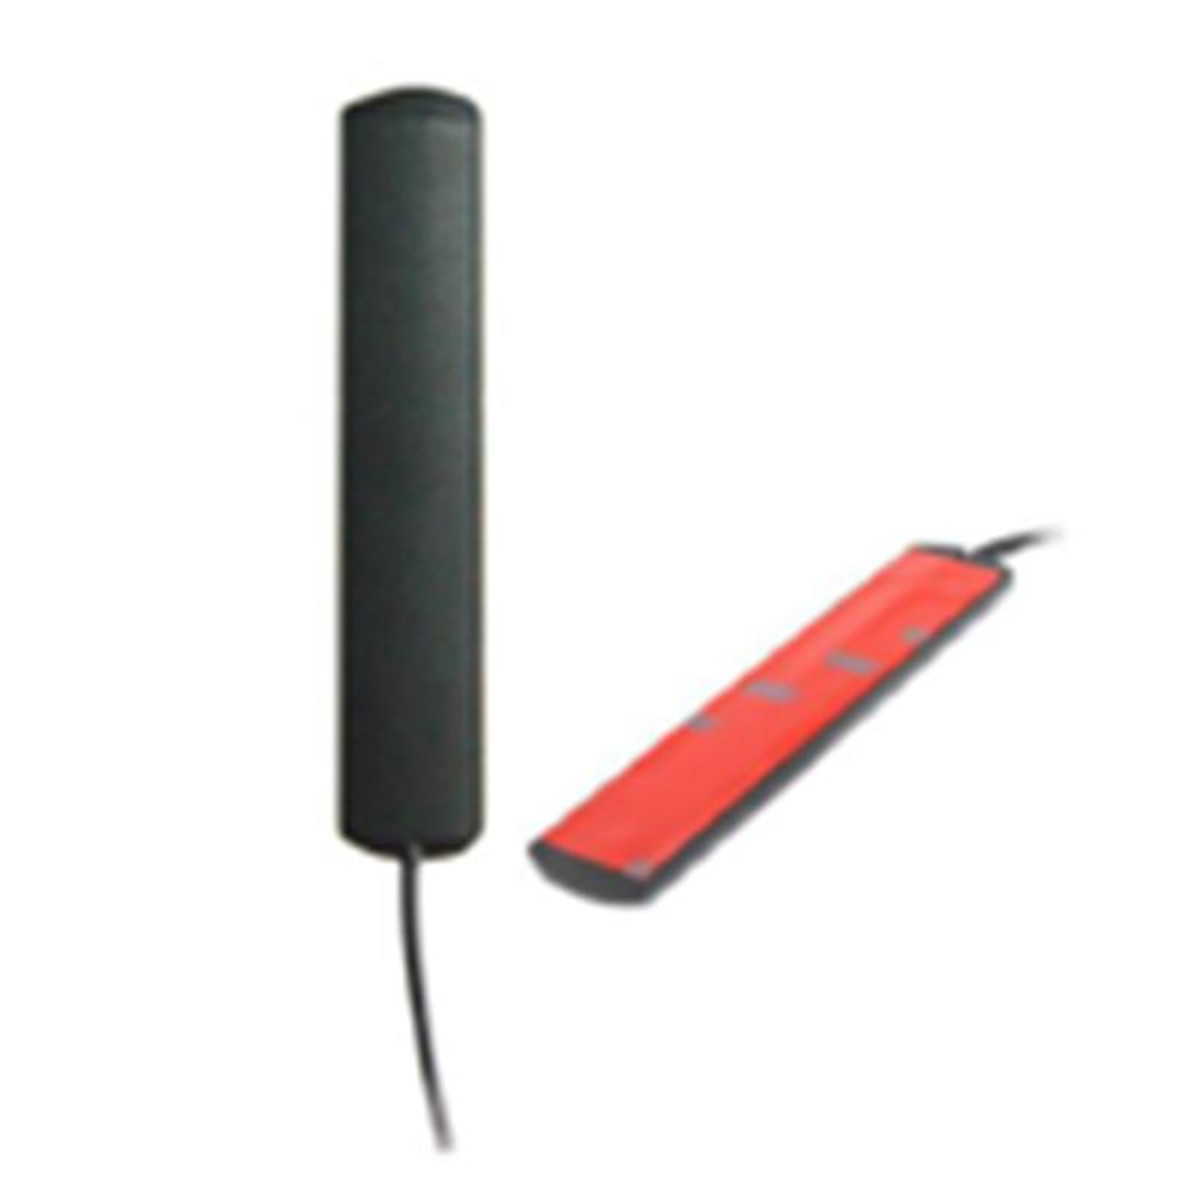 Cel-Fi Cel-Fi GO Indoor Mobile Server Antenna with Adhesive - LTE SMA